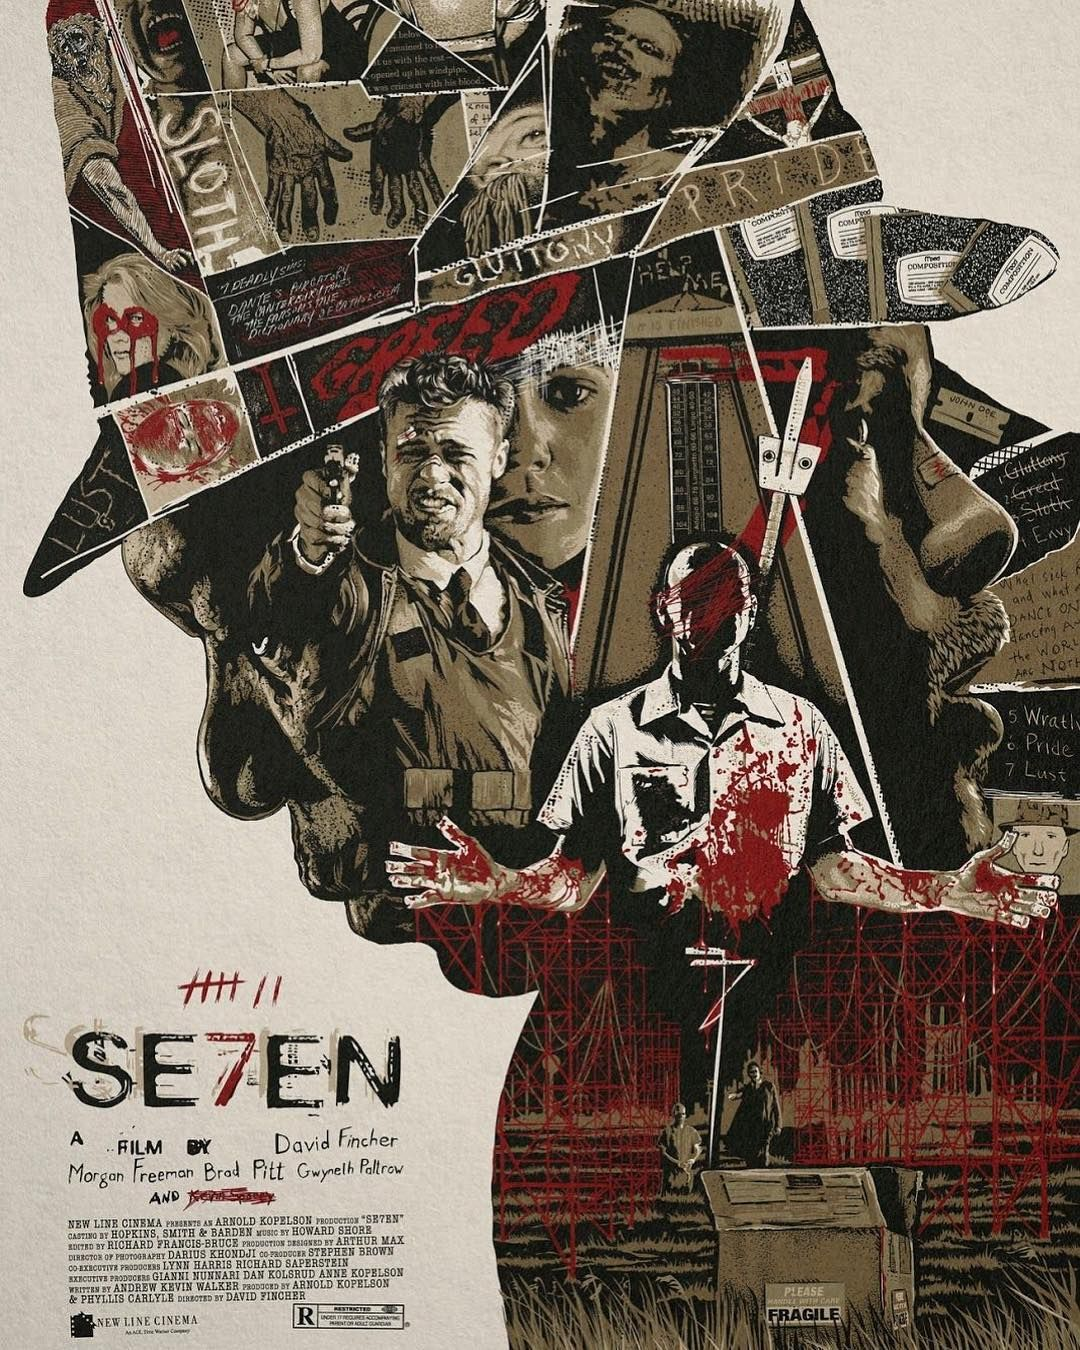 Movies you should be watching: Se7en (1995) // Directed by David Fincher // Starring: Brad Pitt Morgan Freeman Kevin Spacey Gwyneth Paltrow R. Lee Ermey // Why you should be watching? Its a modern day film noir about the decay of morality.  A story of good vs. evil and the question of whether or not good can triumph over evil.  Do we have the strength to overcome the evil inside of us? - The performances are fantastic.  Fincher does an incredible job setting the tone.  This is a dark & gritty film.  If you love taut edge of your seat thrillers youre gonna love this one. // #se7en #davidfincher #bradpitt #morganfreeman #gwenythpaltrow #rleeermey #kevinspacey #moviesyoushouldbewatching #sevendeadlysins #pride #greed #gluttony #envy #sloth #lust #wrath #filmnoir #thriller @gwynethpaltrow